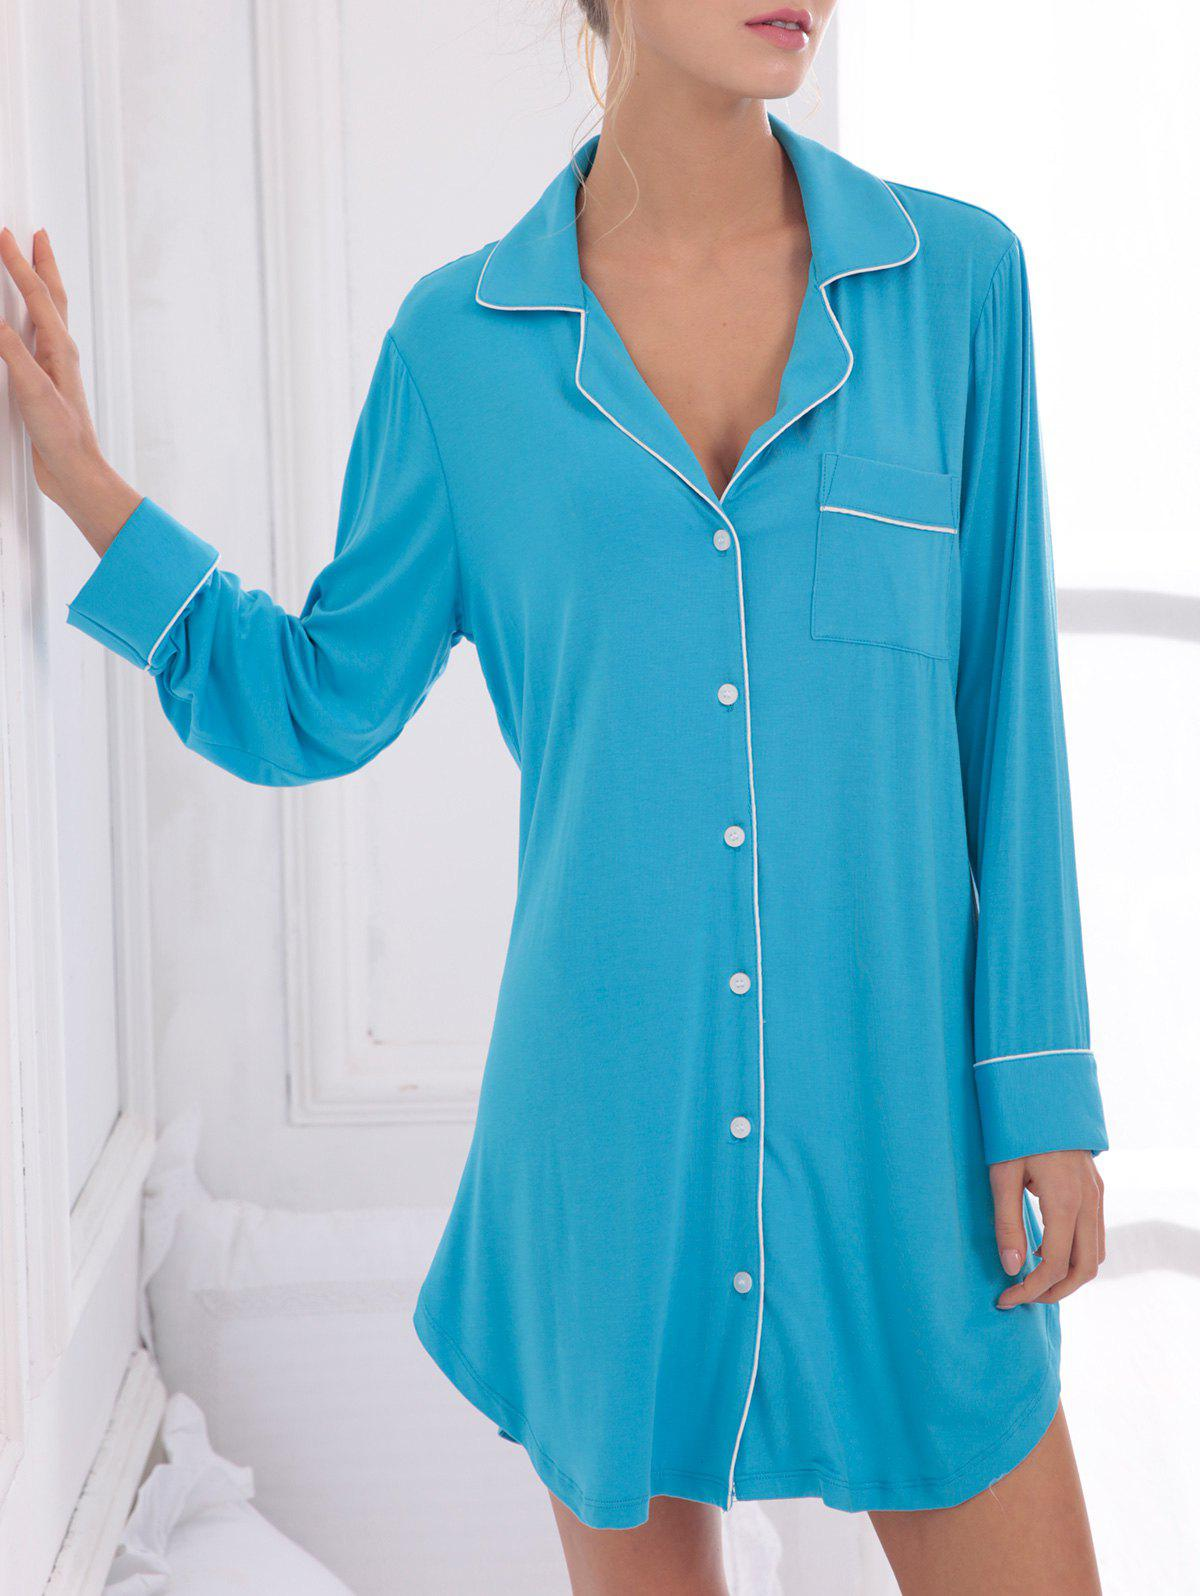 2018 casual cotton sleep shirt dress with pocket blue s in Long cotton sleep shirts